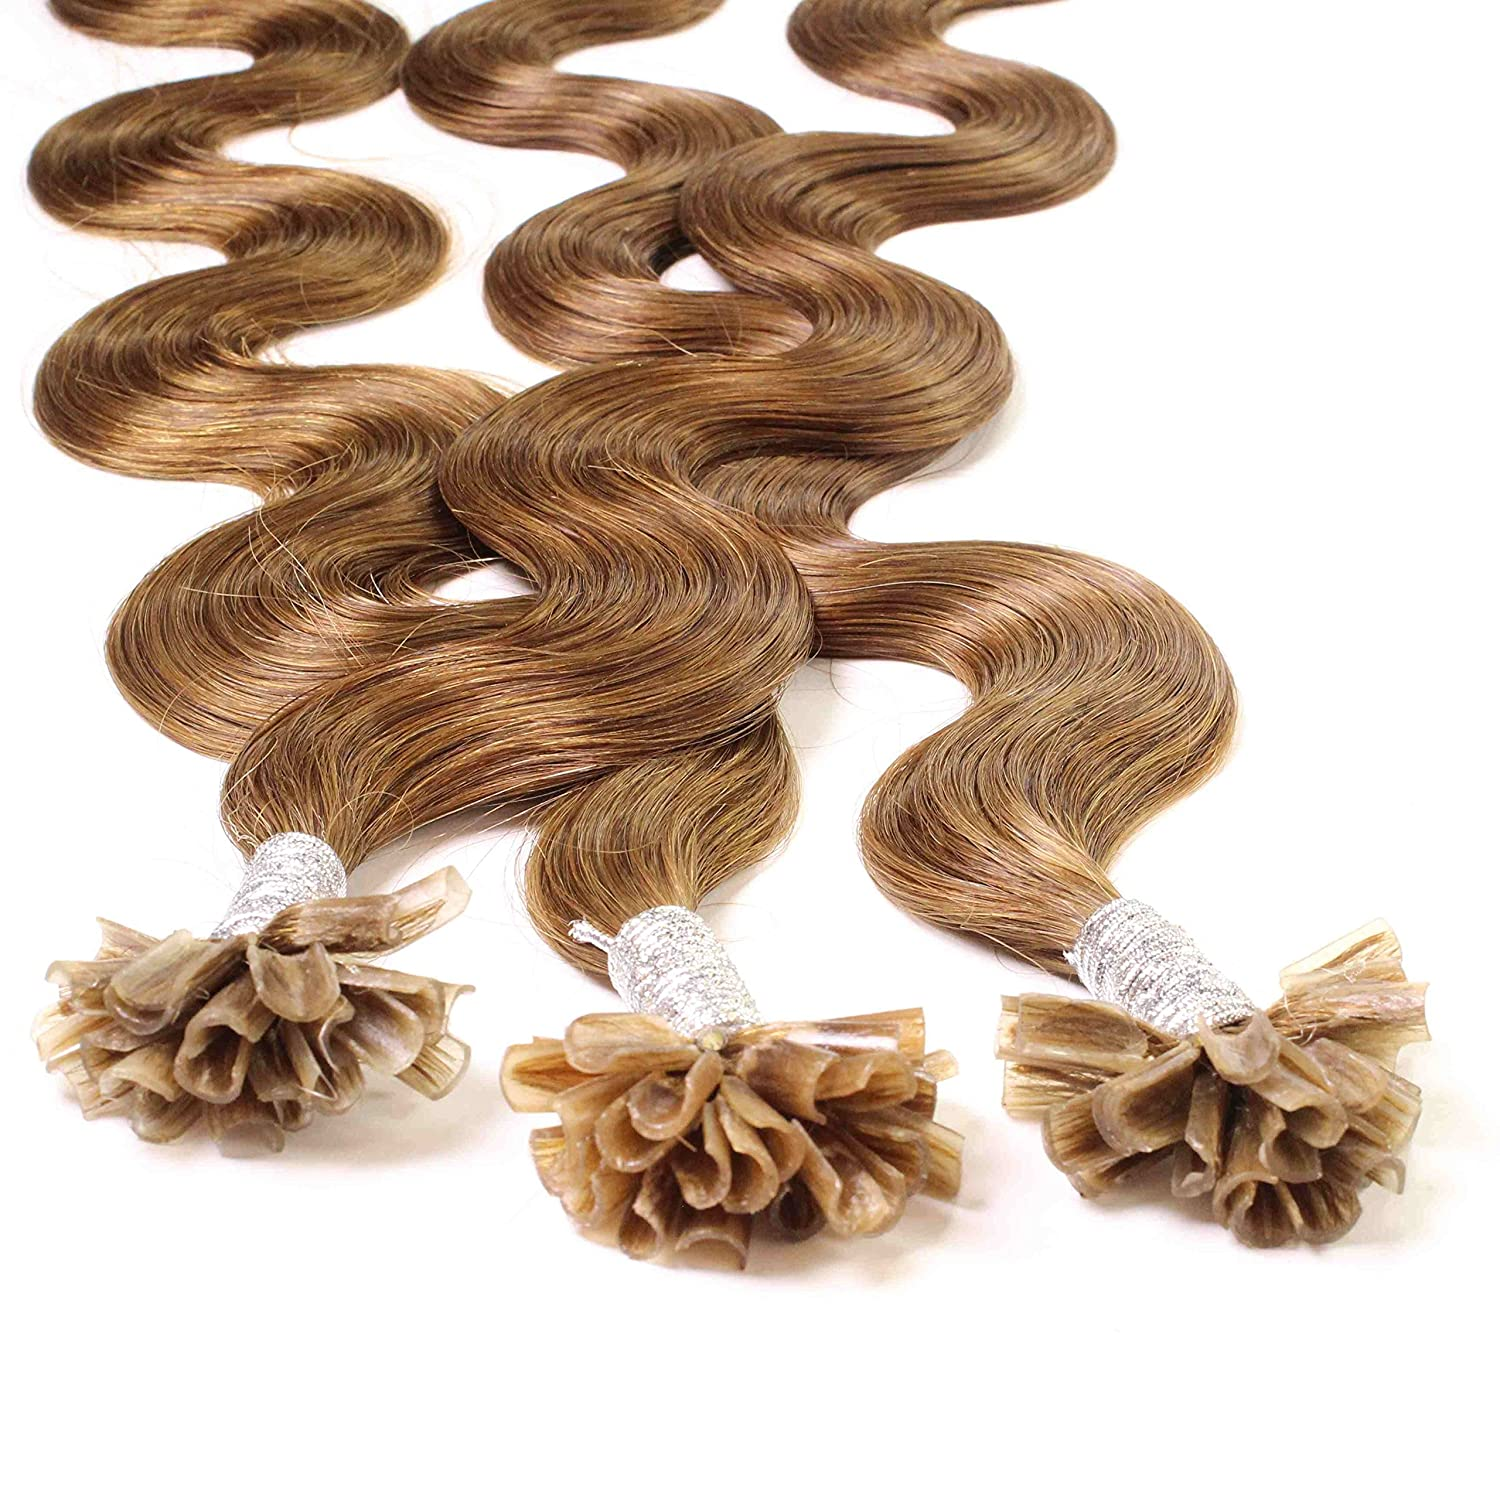 Hair2Heart 25 x 1g Extensiones de Queratina - 50cm - Corrugado, Color 8 Bronceado: Amazon.es: Belleza